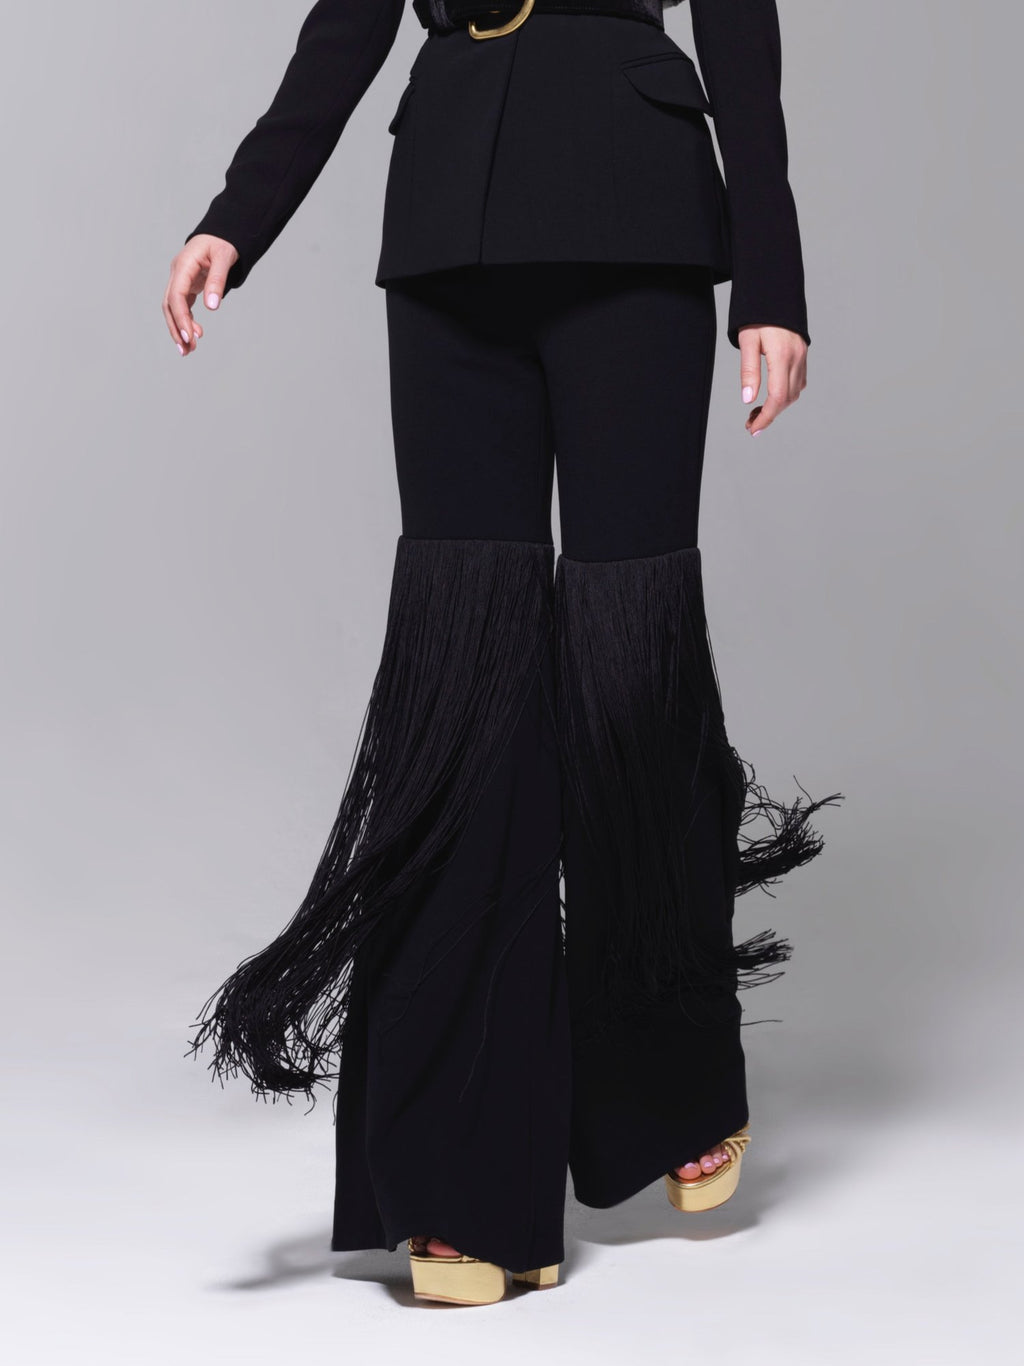 Sergio Hudson Bell Bottom Extreme Fringe Pants as Worn by Tracee Ellis Ross (Available in Black)